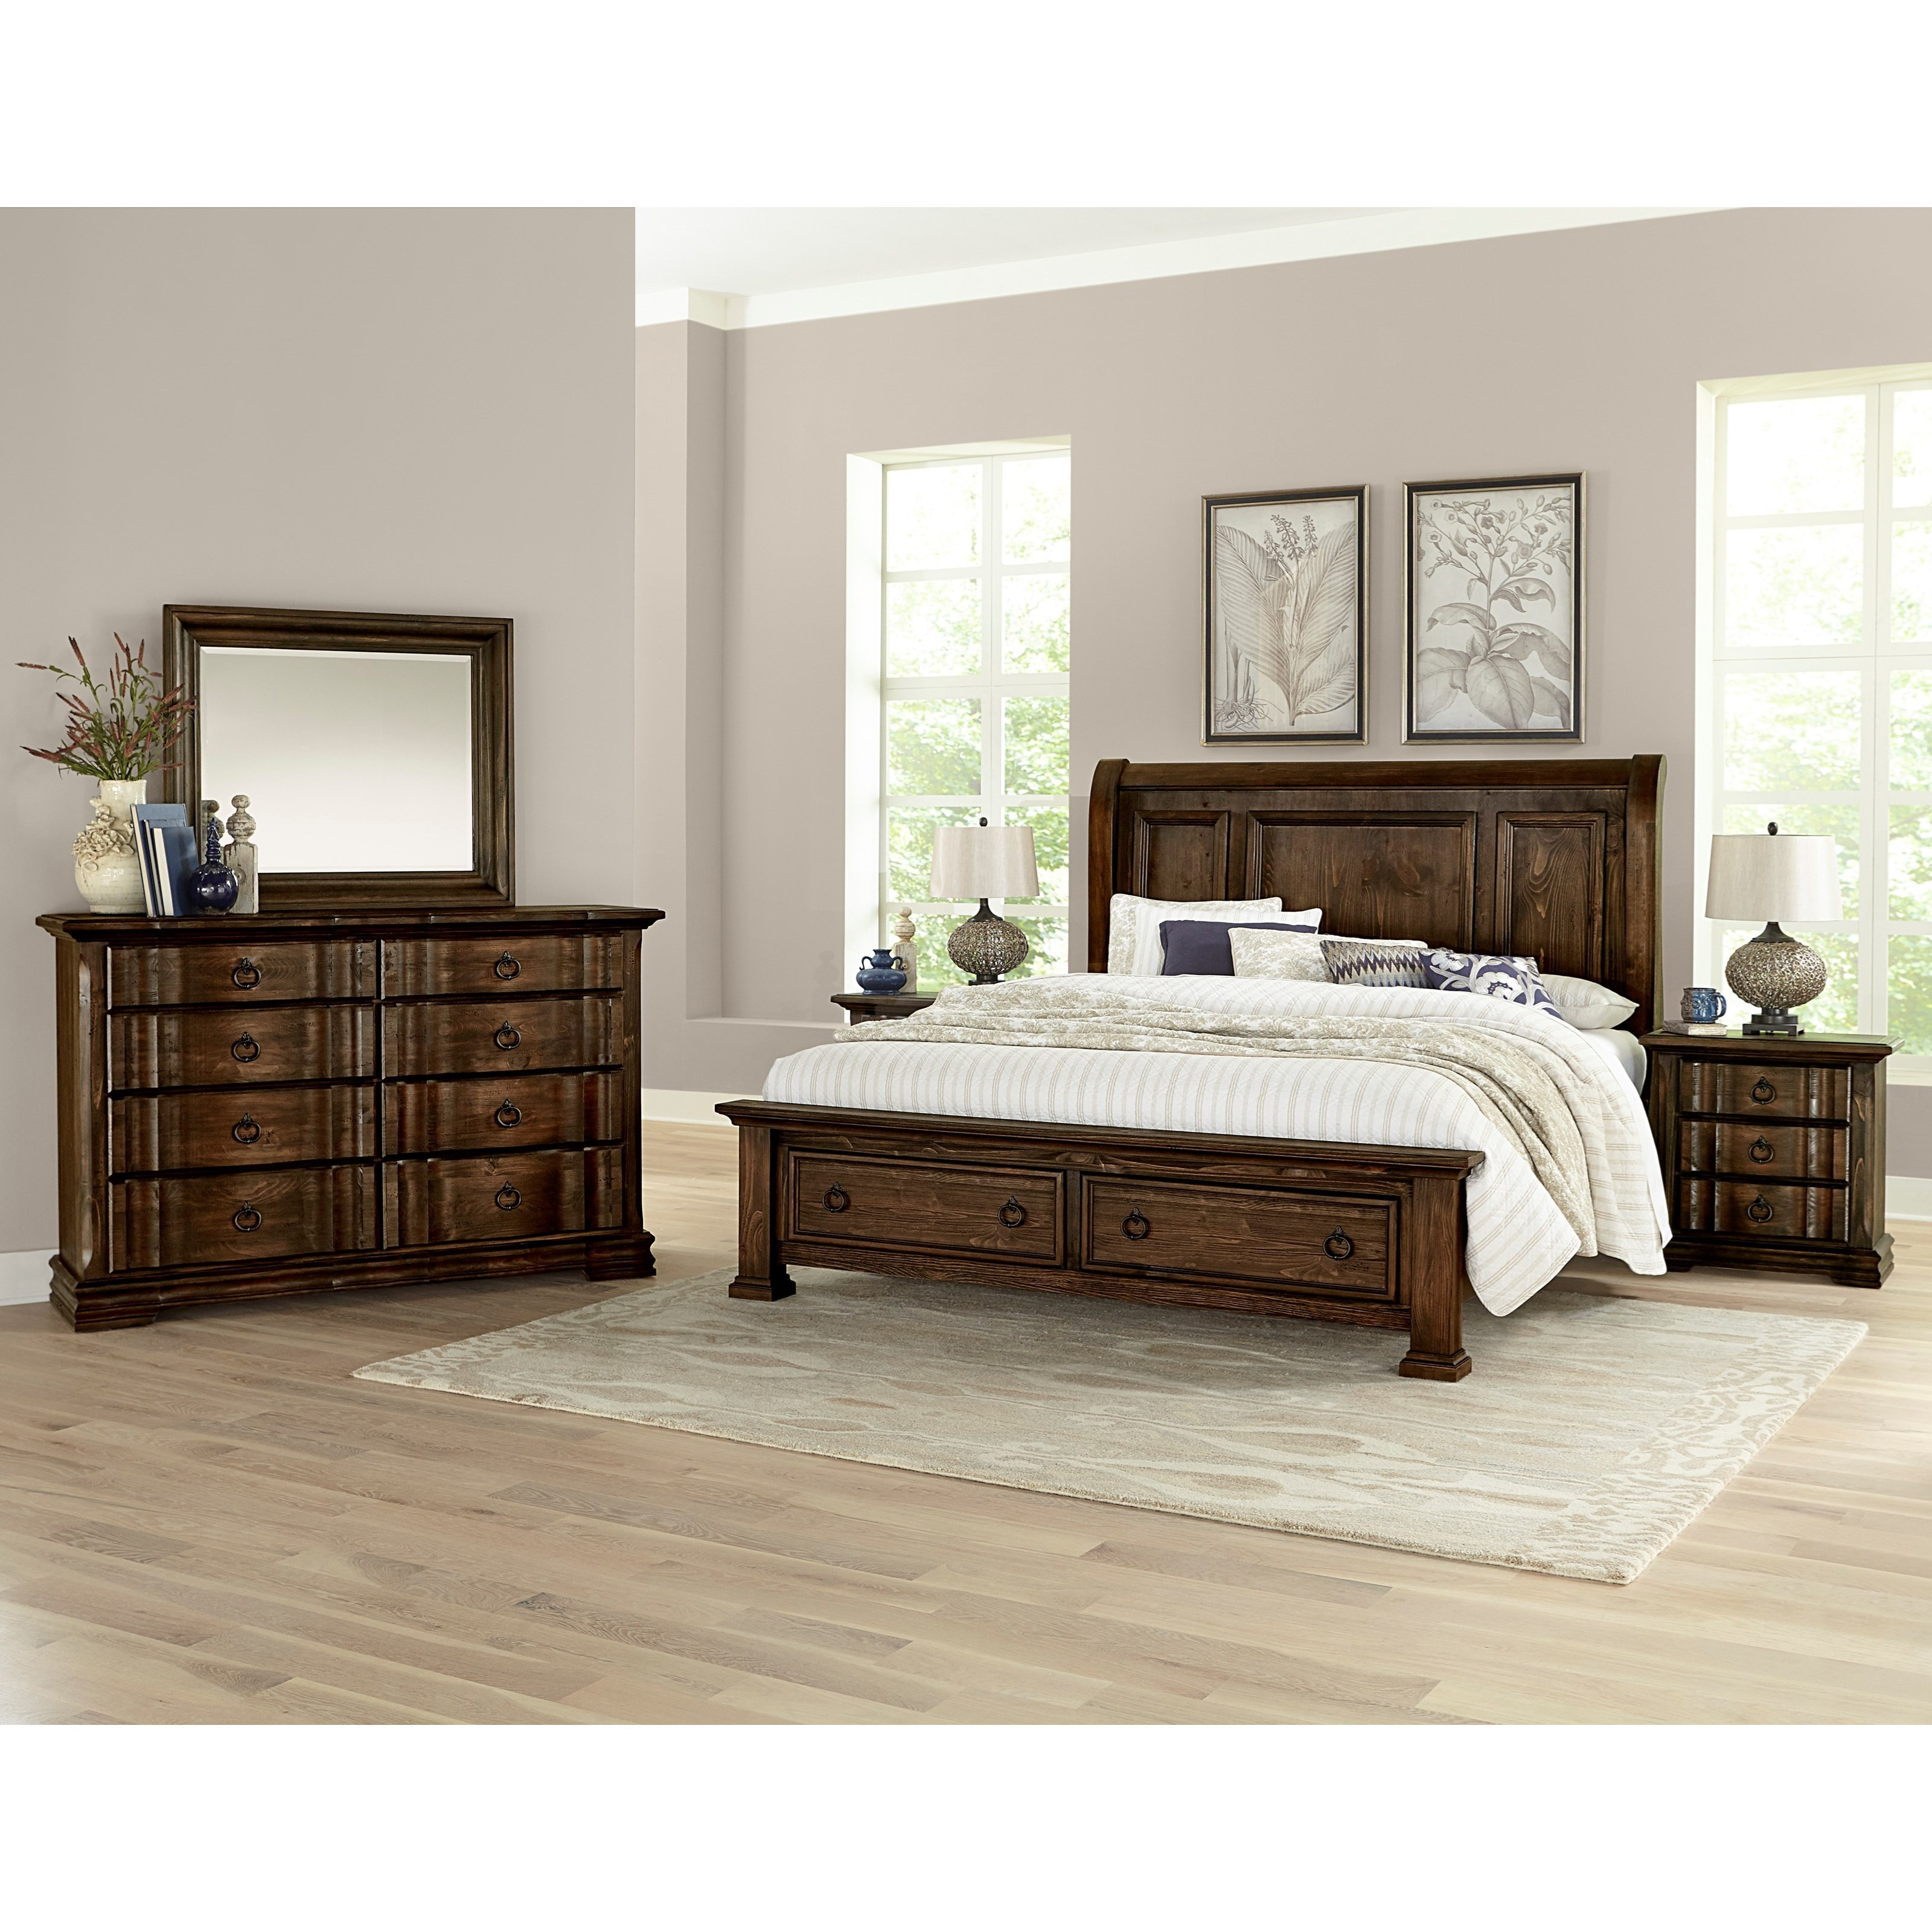 Vaughan Bassett Rustic Hills King Sleigh Bed With Storage